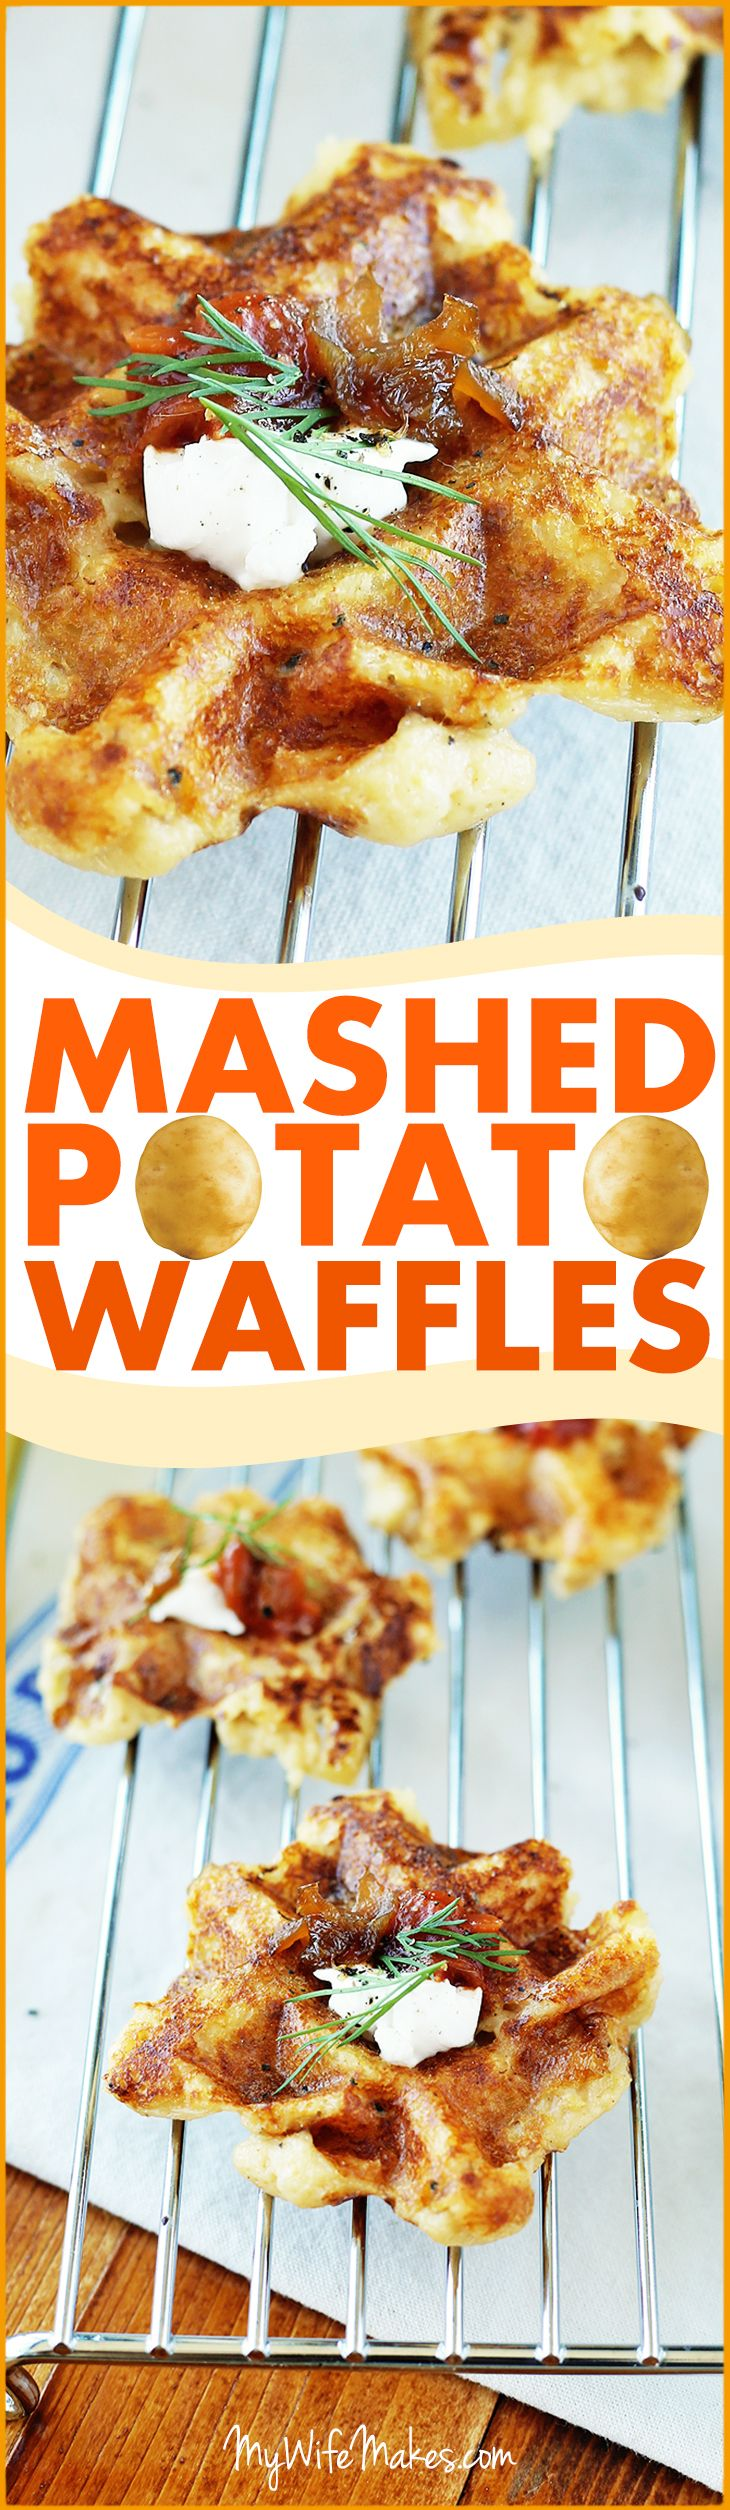 Simple vegan Mashed Potato Waffles; moist and crispy on the outside, warm and creamy on the inside. These potato waffles also go great with salsa, vegan cream cheese, and caramelized onions (gotta love 'em onions!).